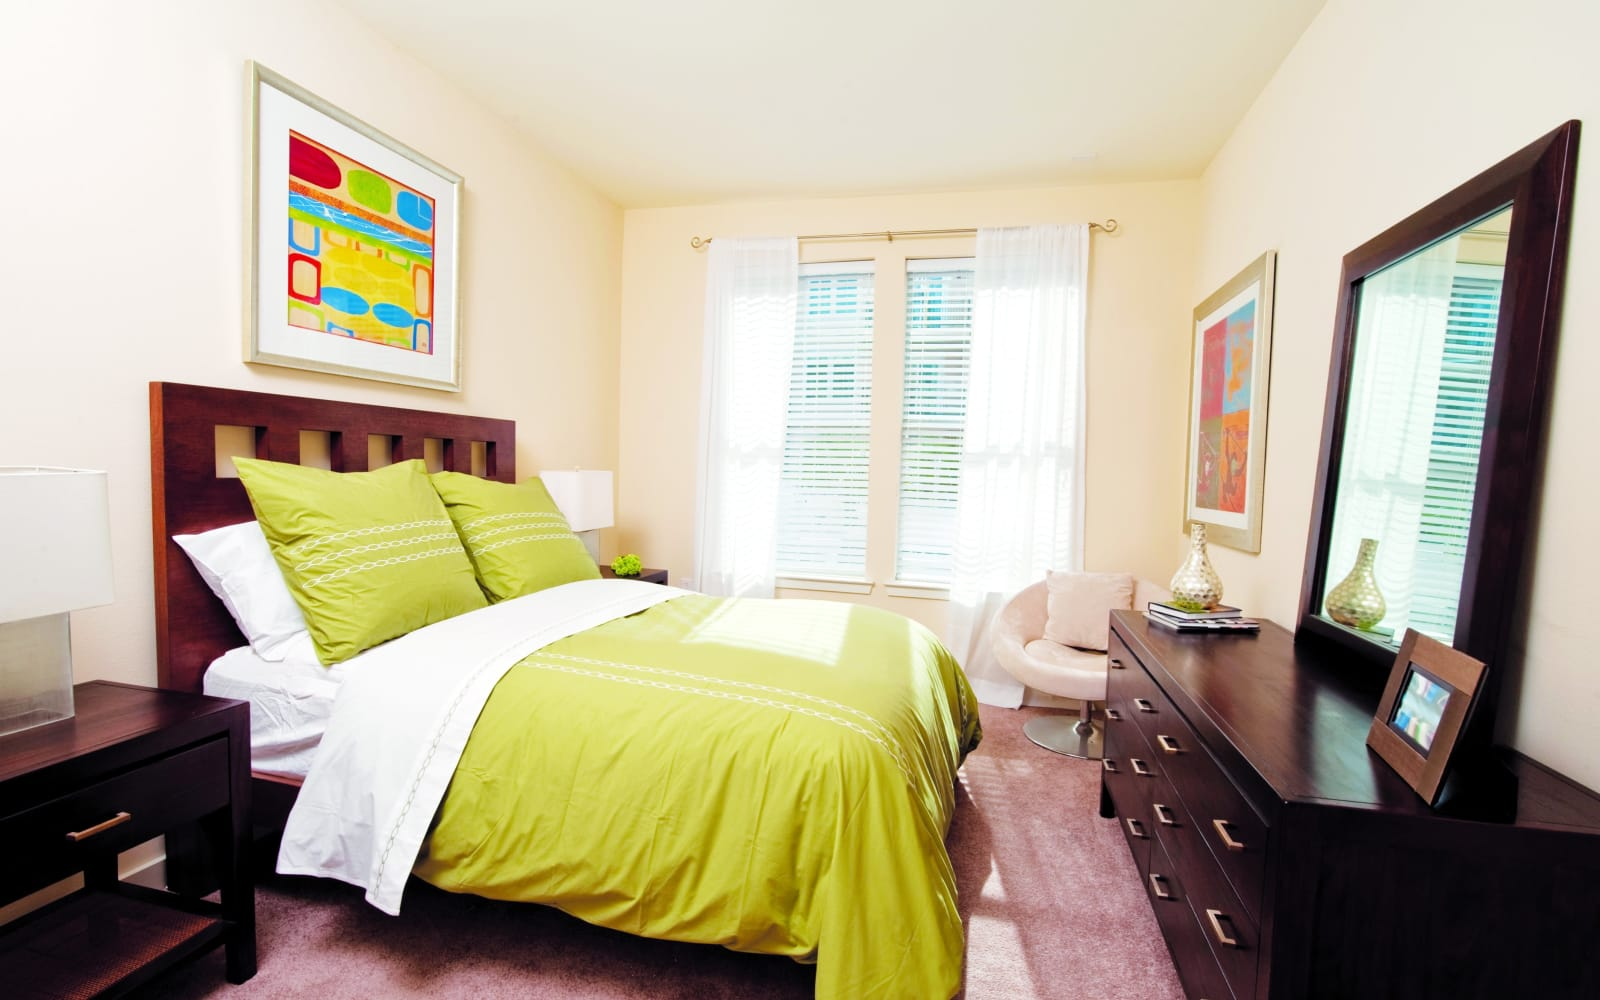 Bedroom layout at The Preserve in New Orleans, Louisiana